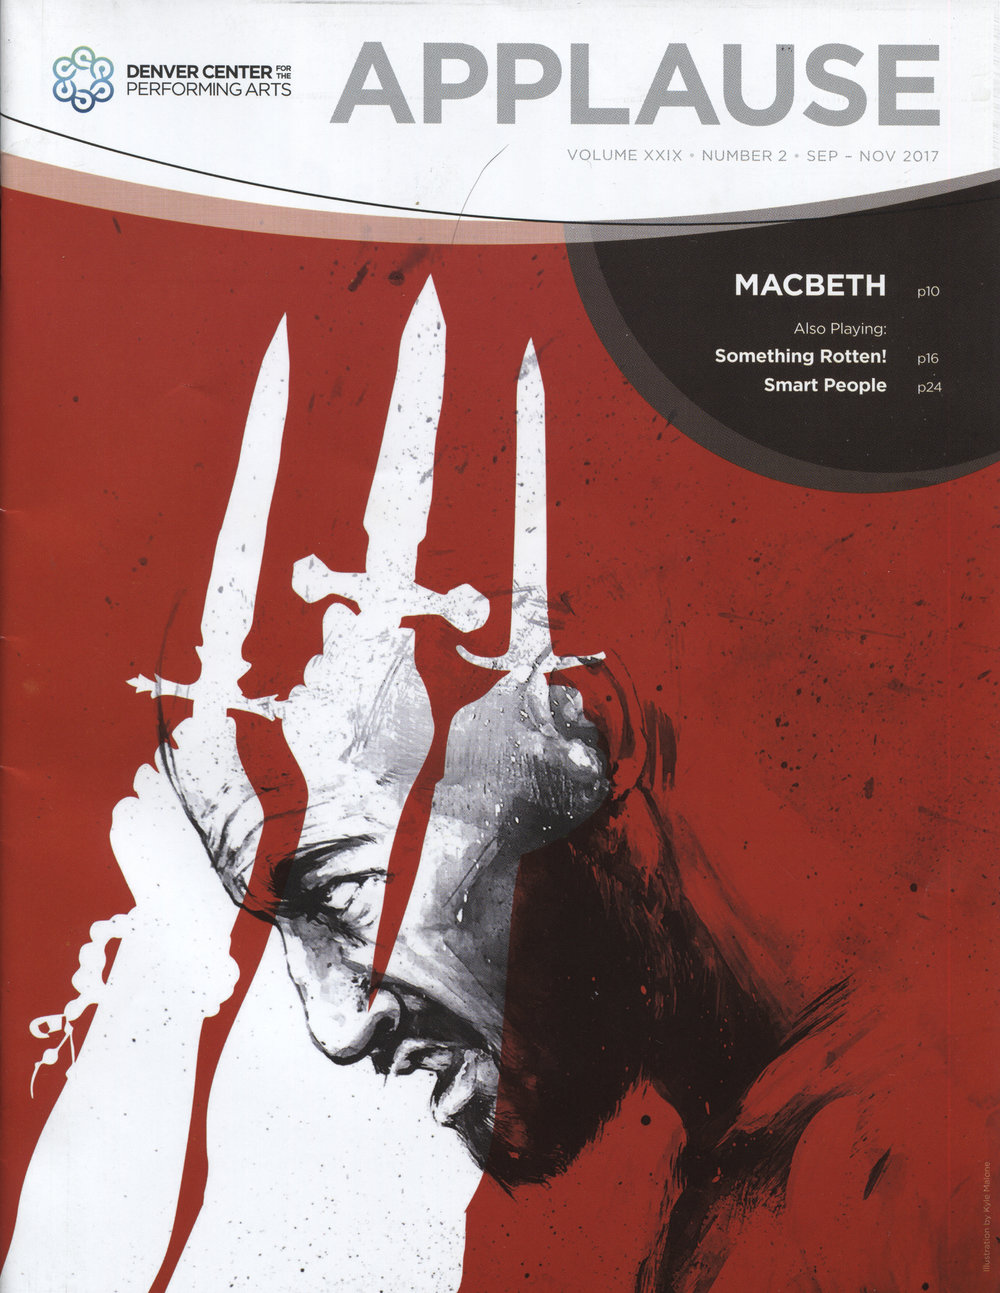 Denver Center for the Performing Arts' Applause Macbeth Edition